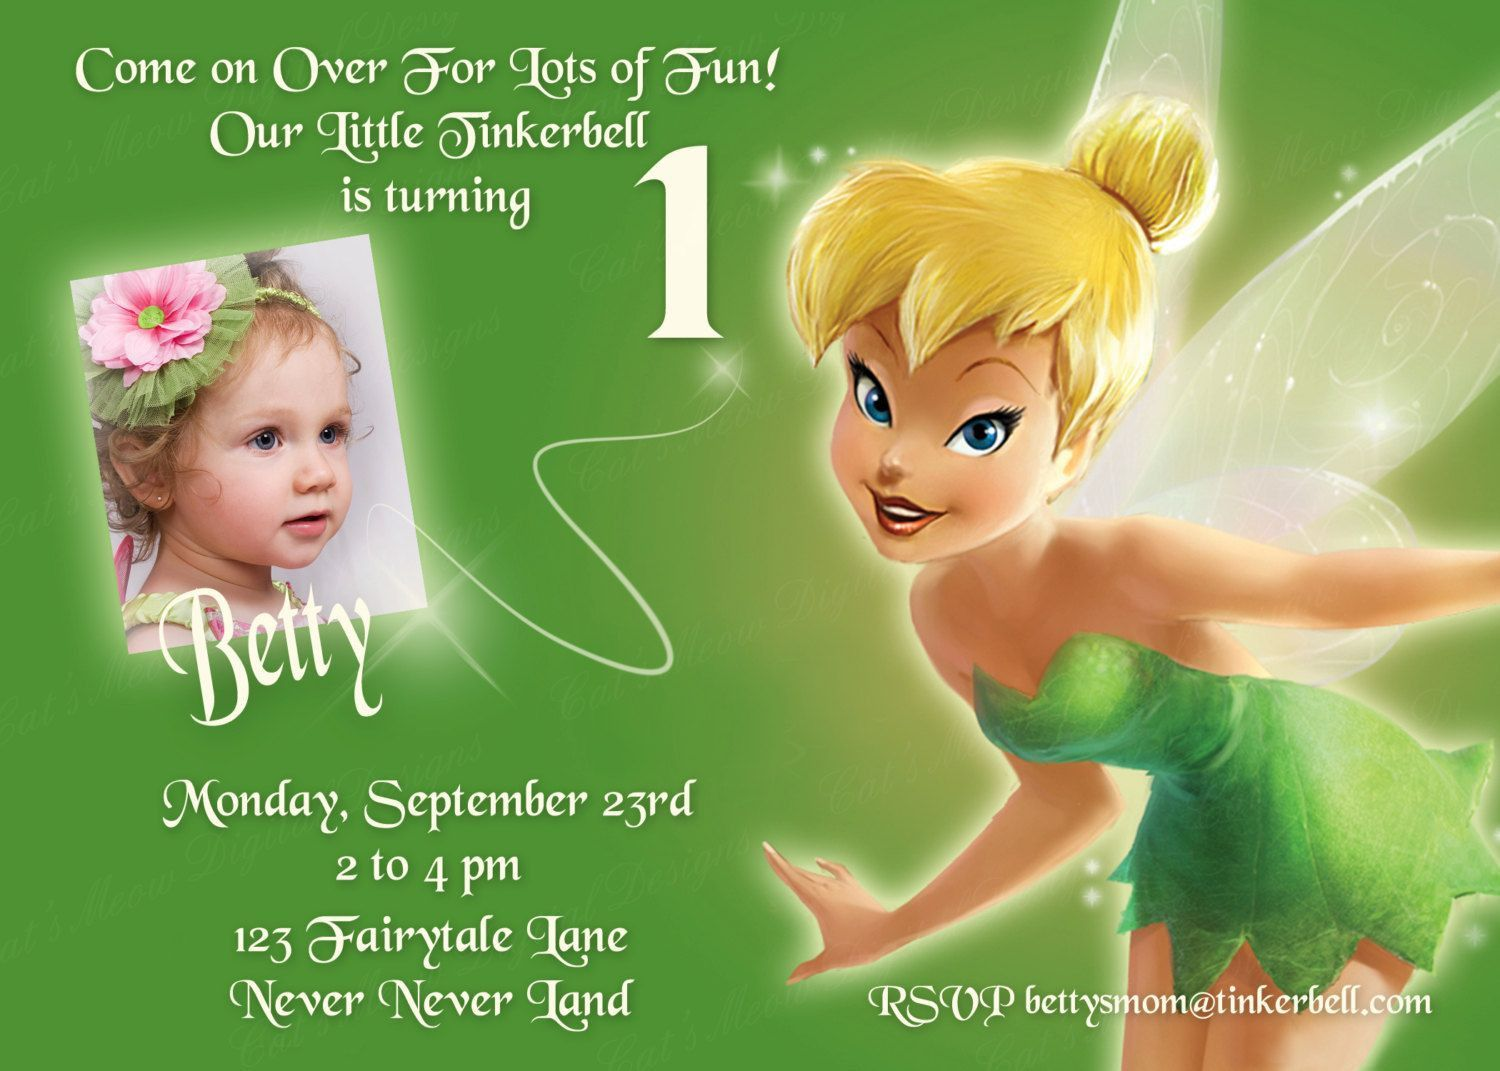 Tinkerbell Invitation Template Free New Cool Free Tinkerbell Birthday Invitations Tinkerbell Invitations Printable Invitations Tinkerbell